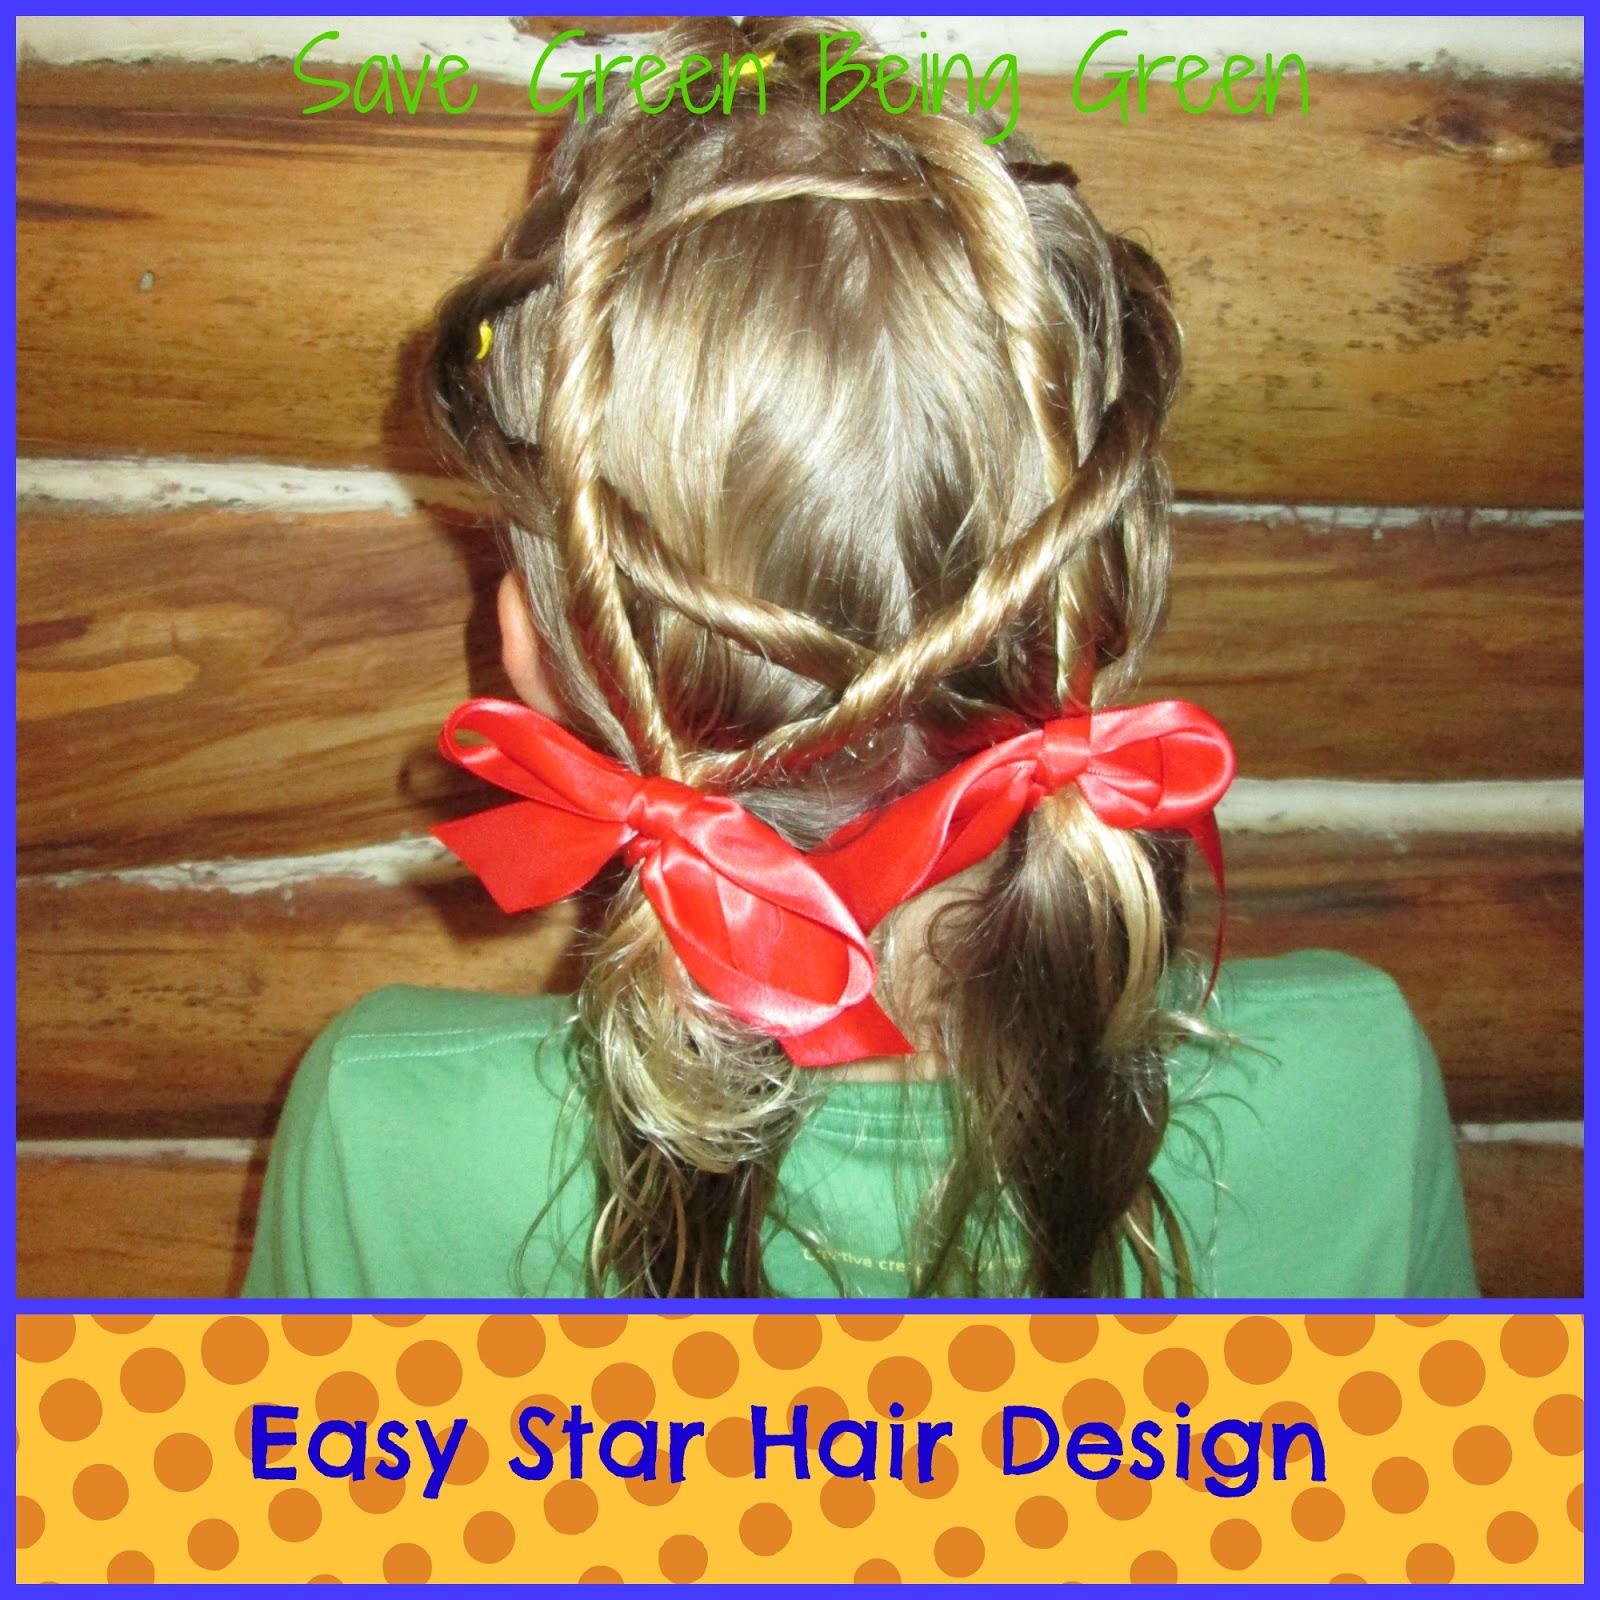 Save Green Being Green: Easy Star Hair Design for Girls